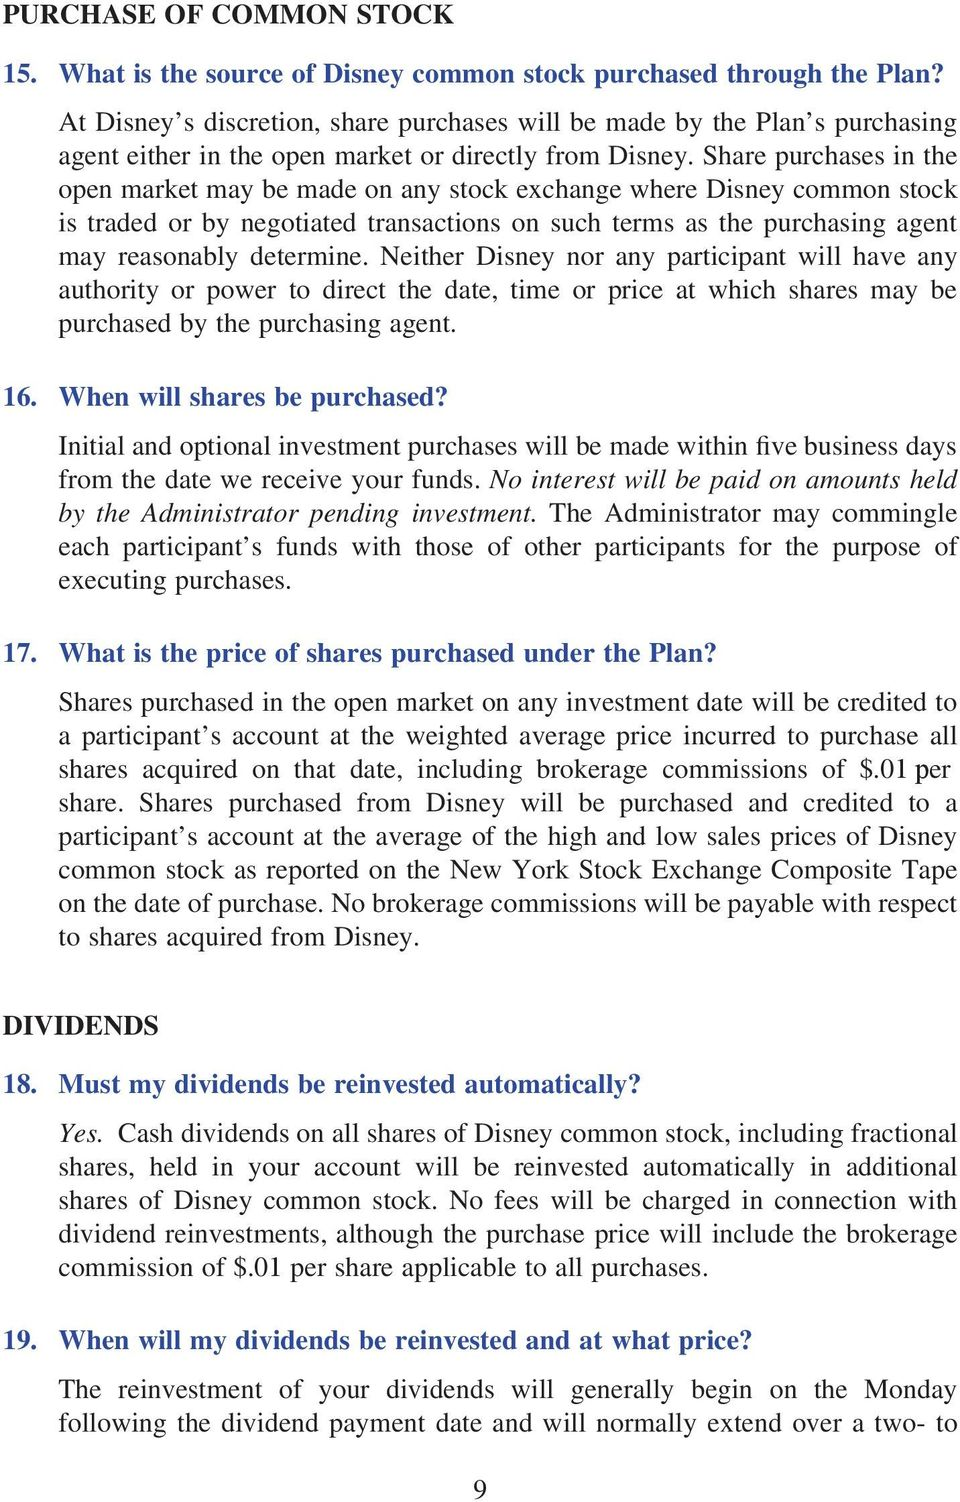 Share purchases in the open market may be made on any stock exchange where Disney common stock is traded or by negotiated transactions on such terms as the purchasing agent may reasonably determine.